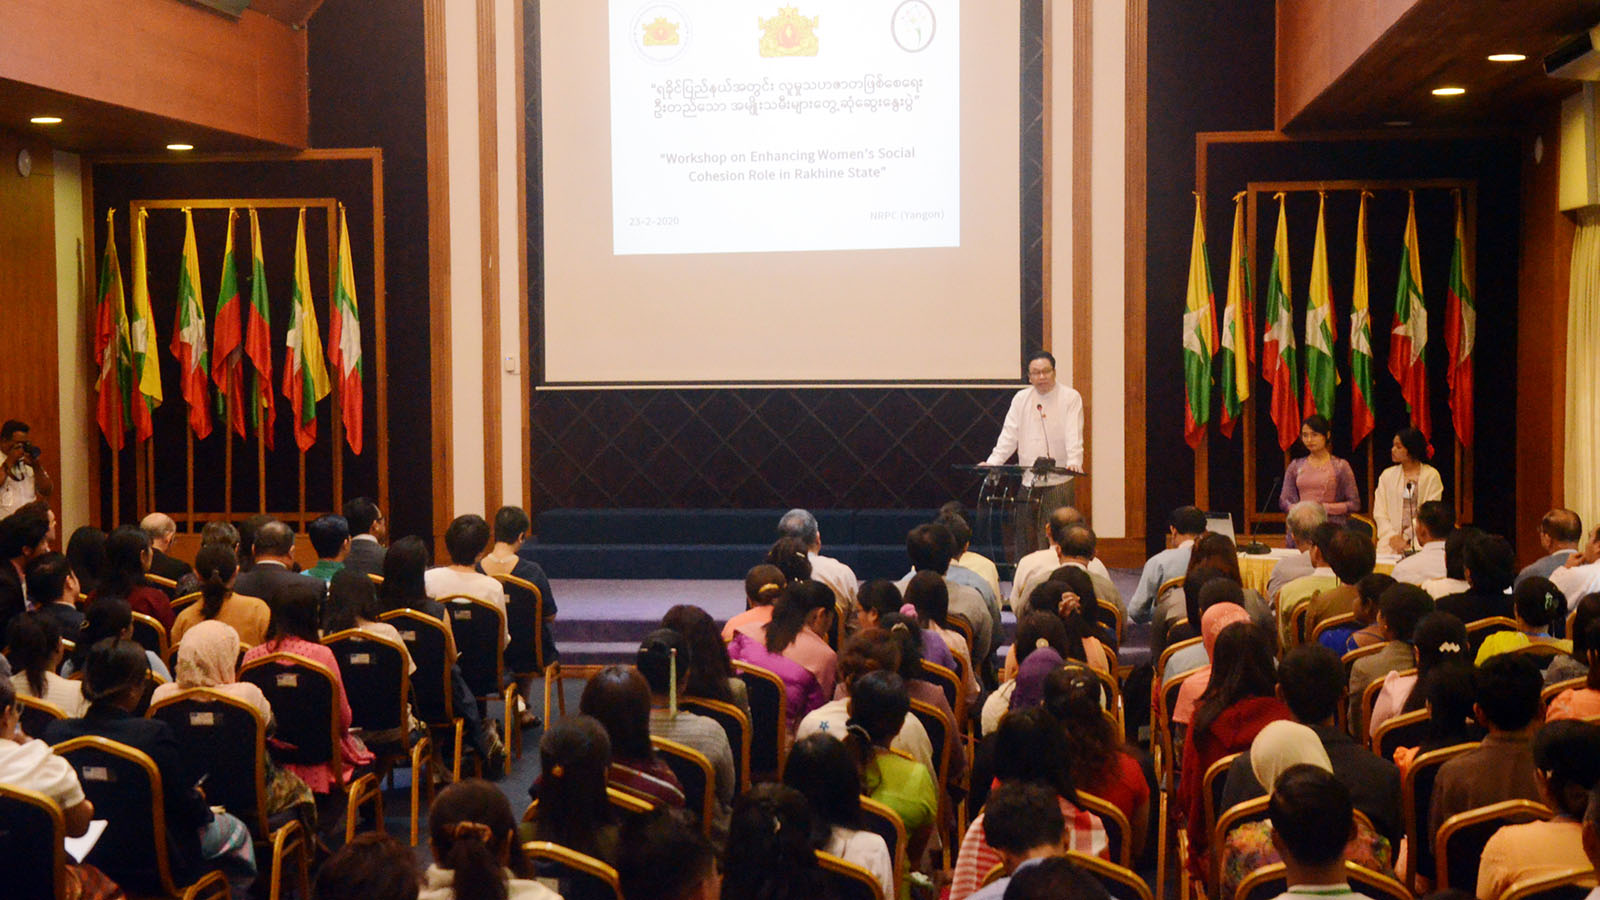 Deputy Minister U Min Lwin delivers the speech at the opening ceremony of the Workshop on Enhancing Women's Social Cohesion Roles in Rakhine State yesterday. Photo: MNA